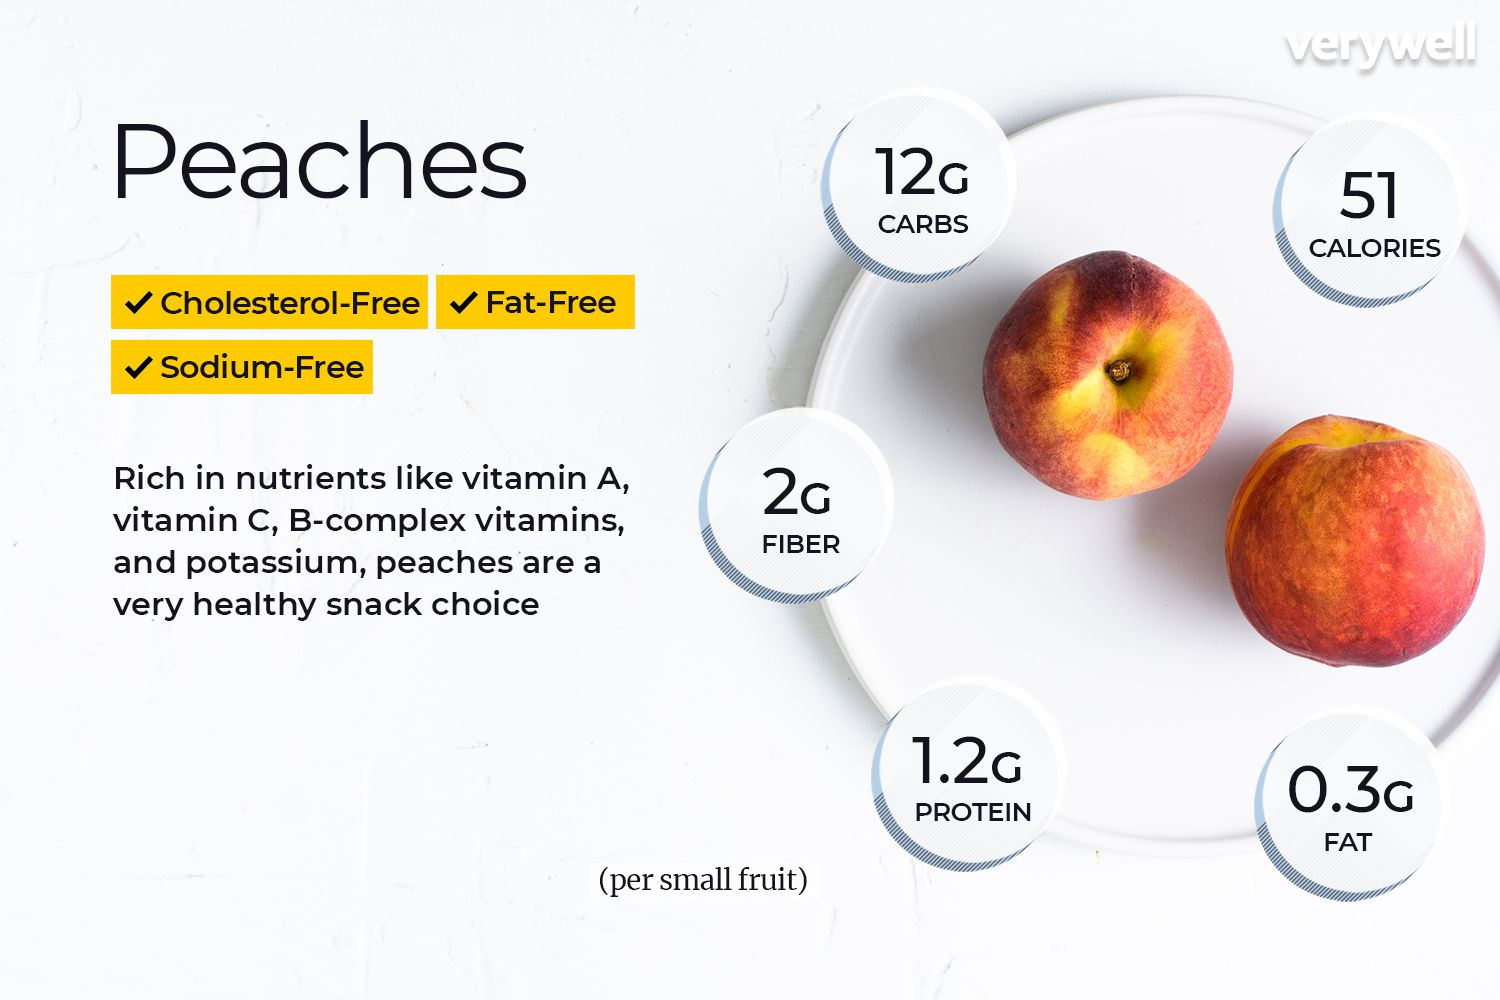 Peach Nutrition Facts: Calories, Carbs, and Health Benefits